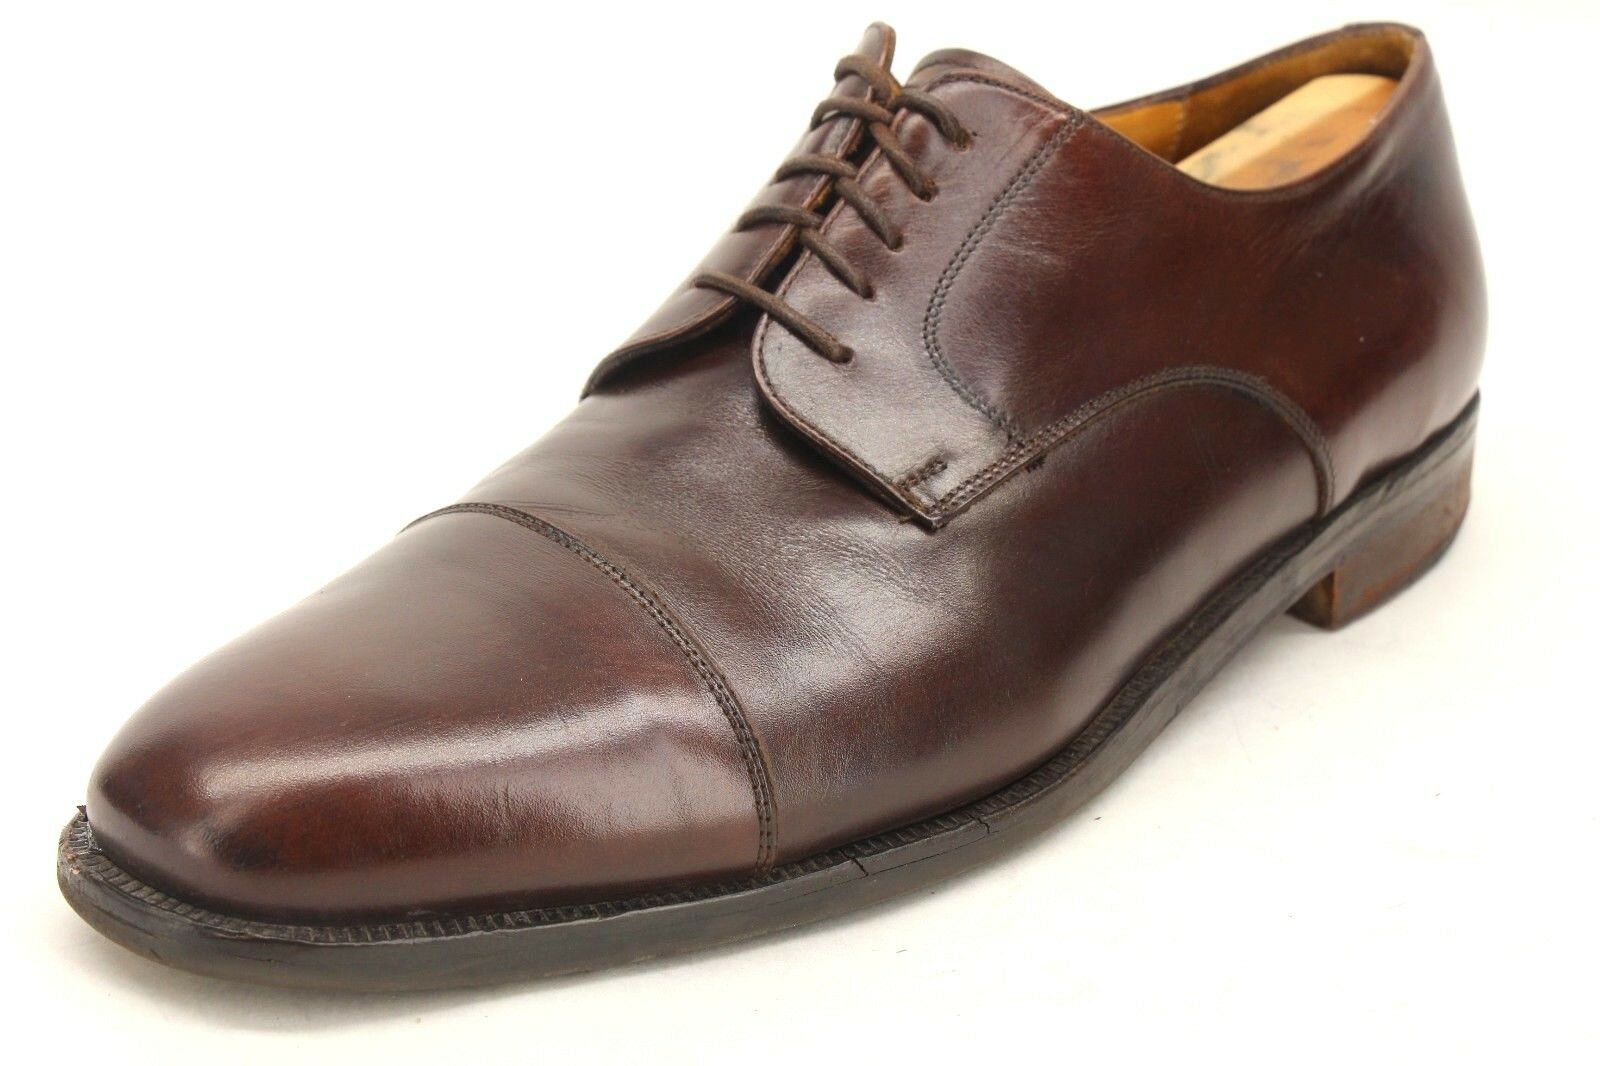 25d463a783d Johnston   Murphy Cellini Brown Brown Brown Leather Derby Style Cap Toe  Oxfords Size 11.5 M ab5959